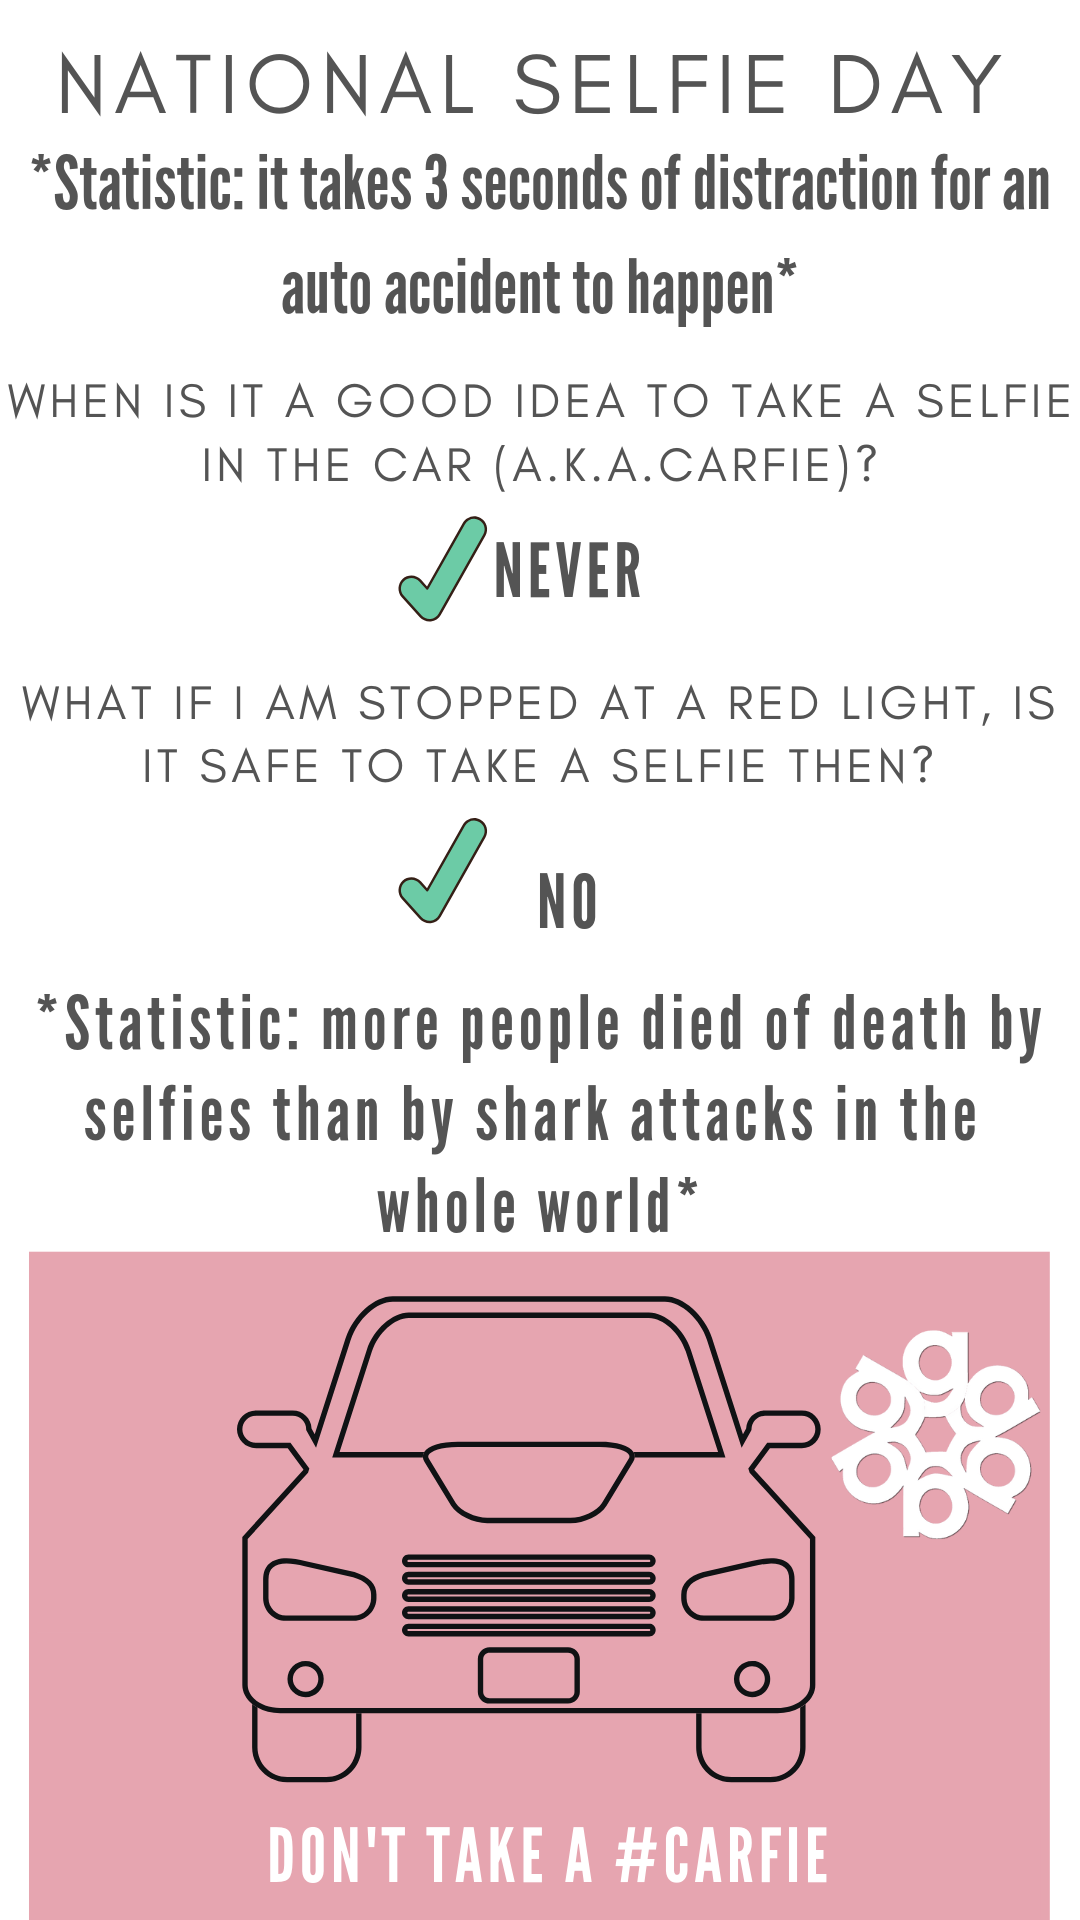 National Selfie Day Safety Infographic